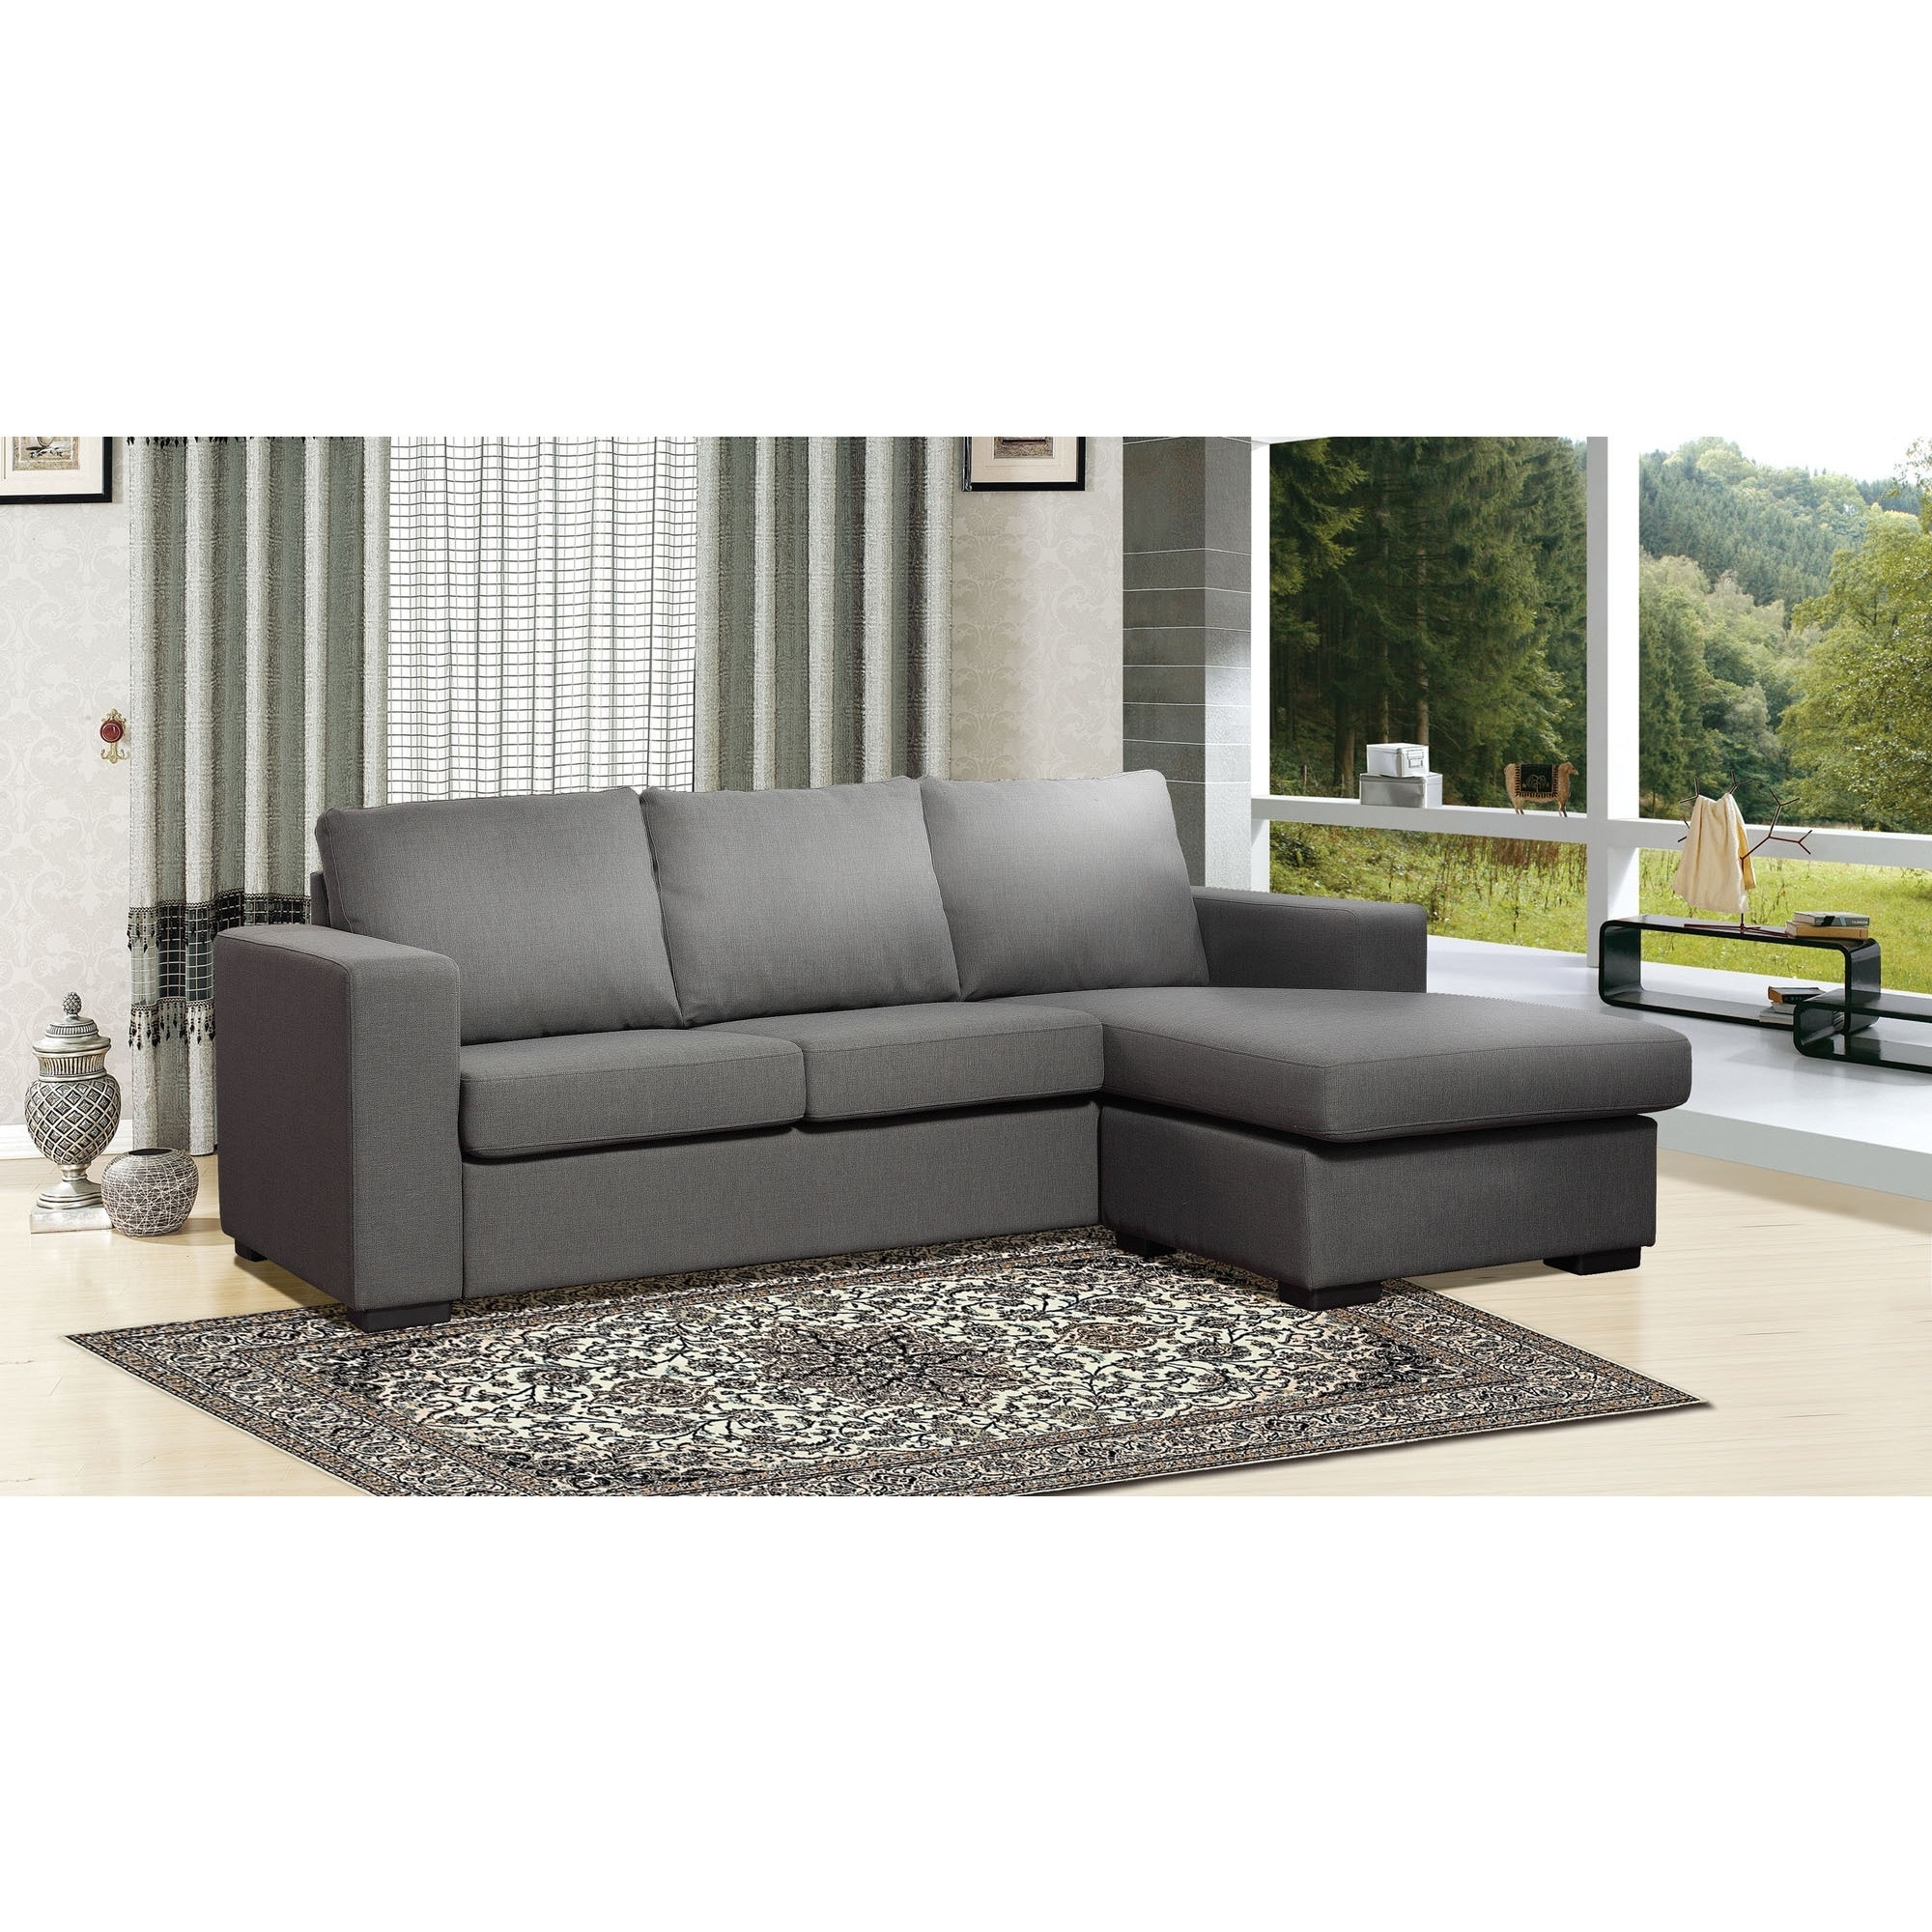 Charcoal Gray Sectional Sofas With Chaise Lounge For Most Up To Date Alenya 3 Piece Sectional Quartz Fabric Reclining Sectional Grey (View 1 of 15)